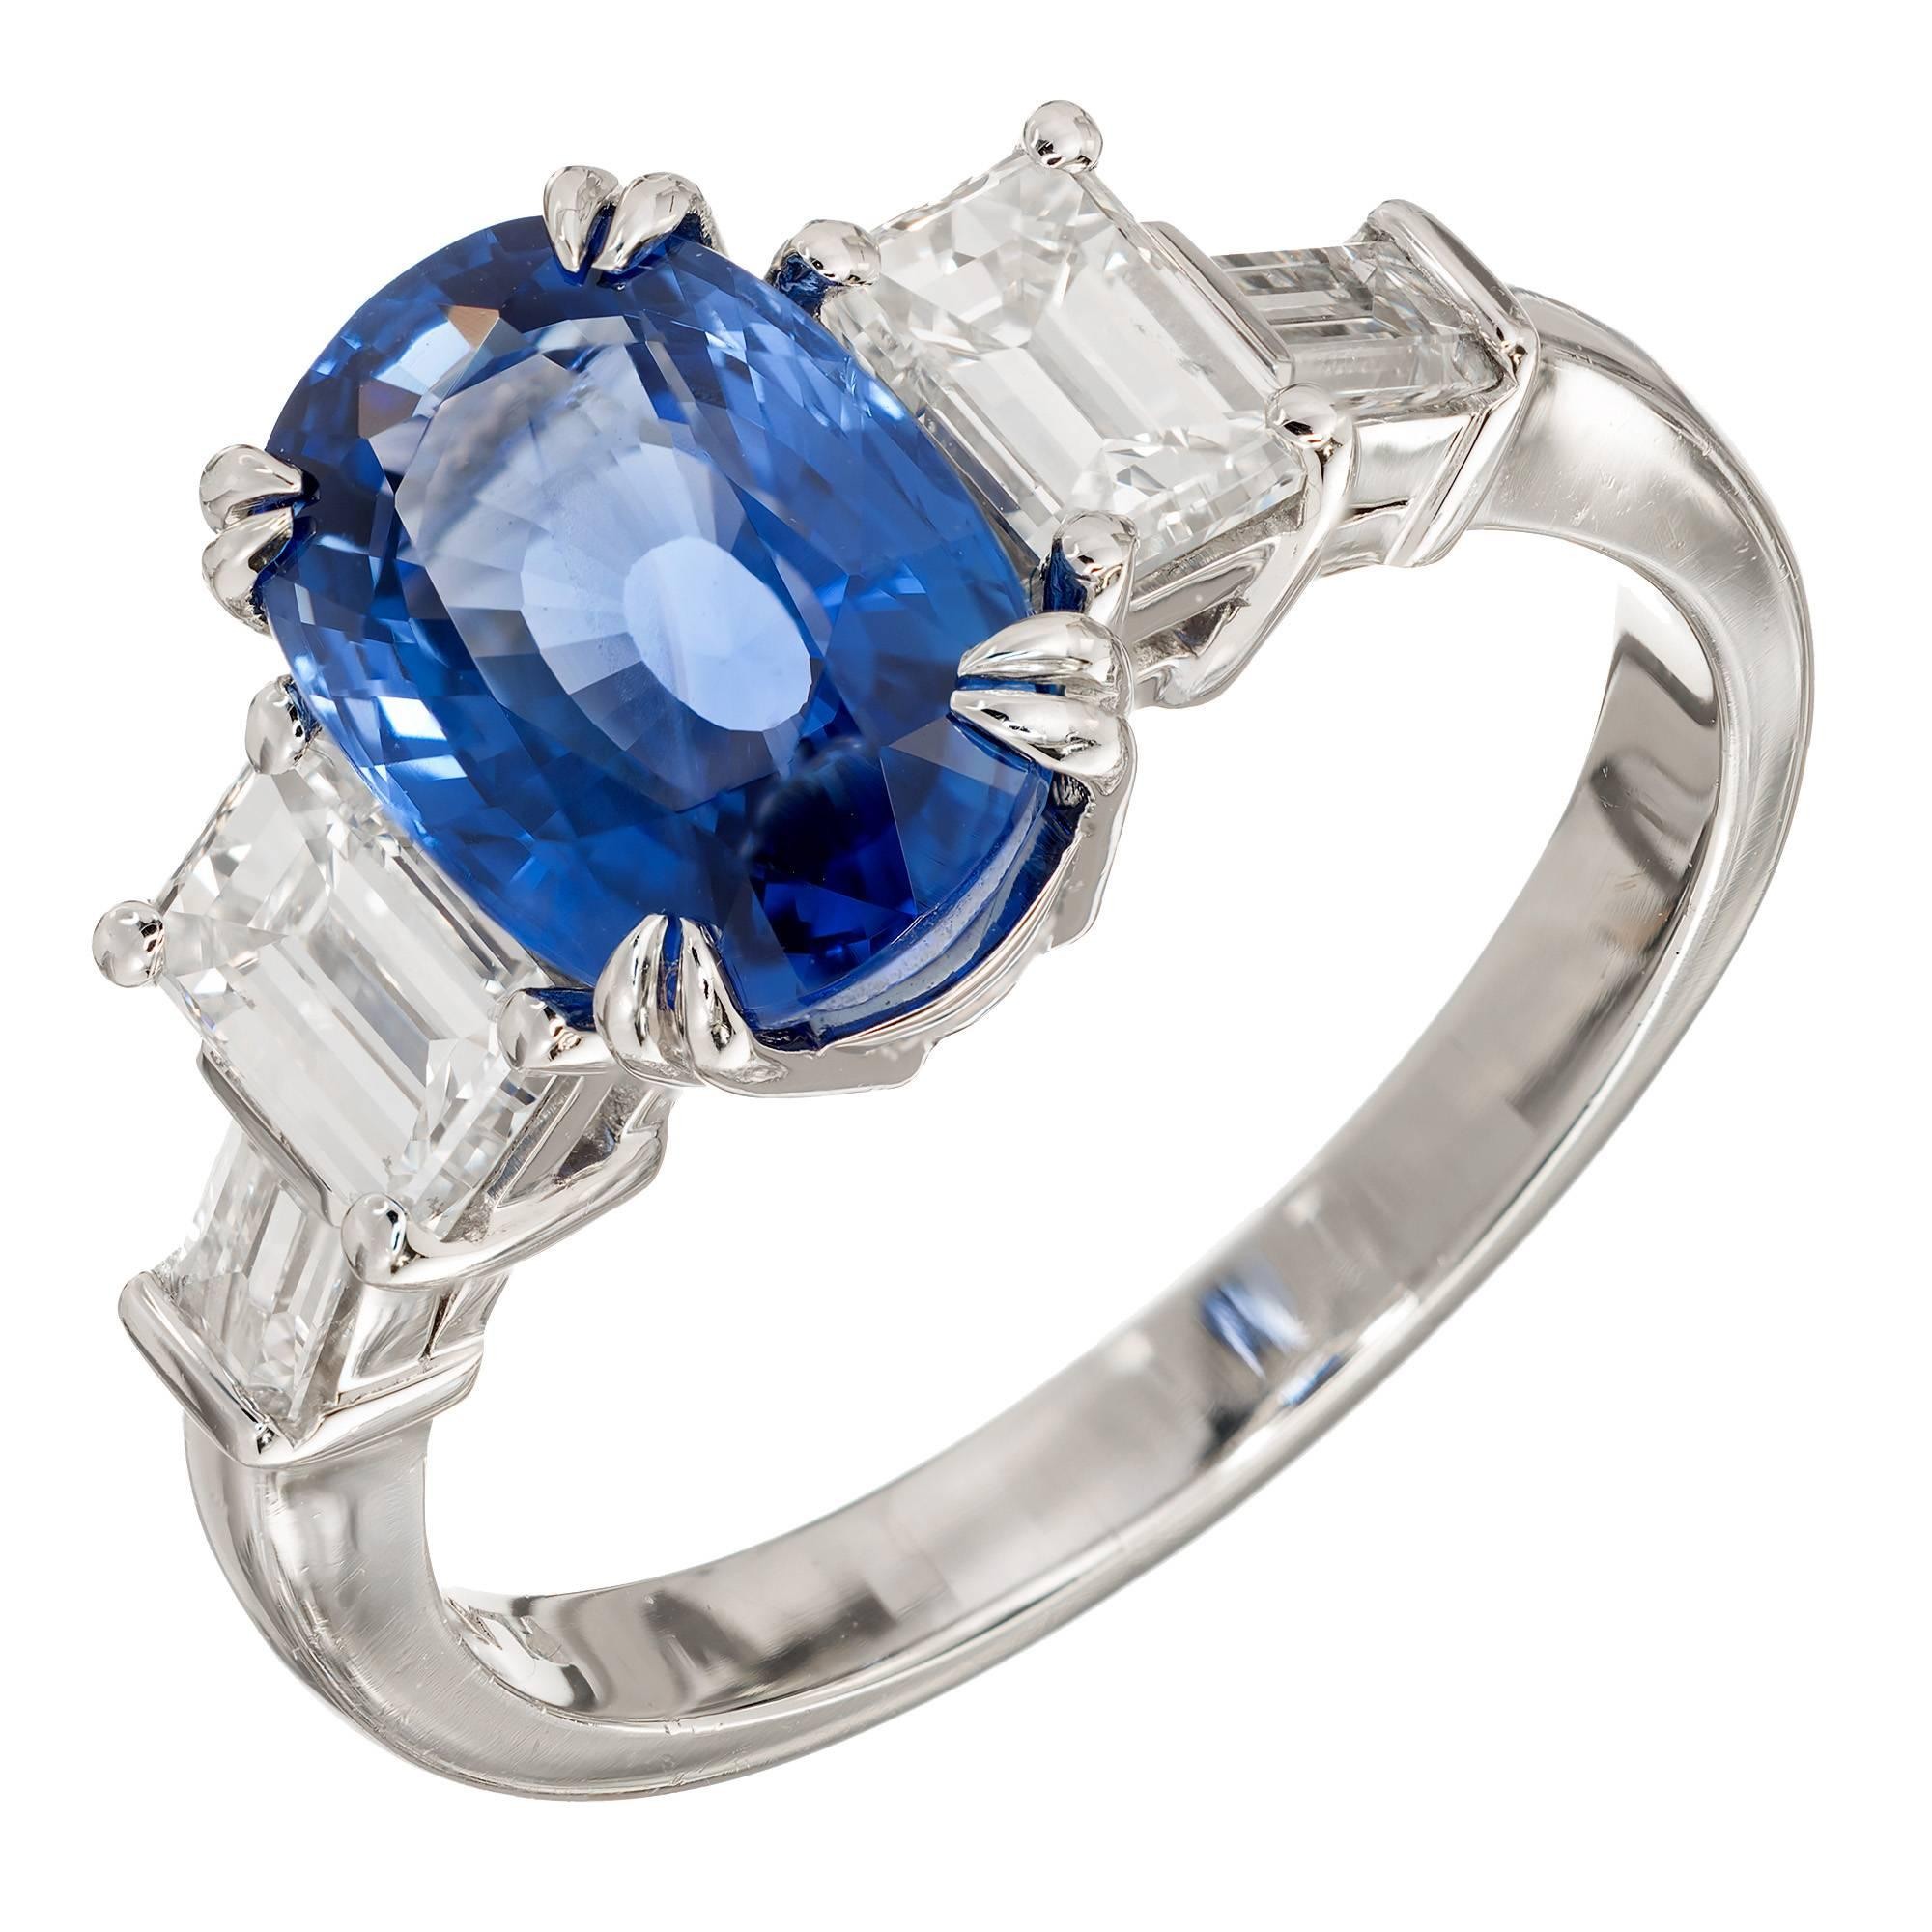 peter id platinum blue engagement for master b ring jewelry diamond light sale rings sapphire suchy pale at j carat